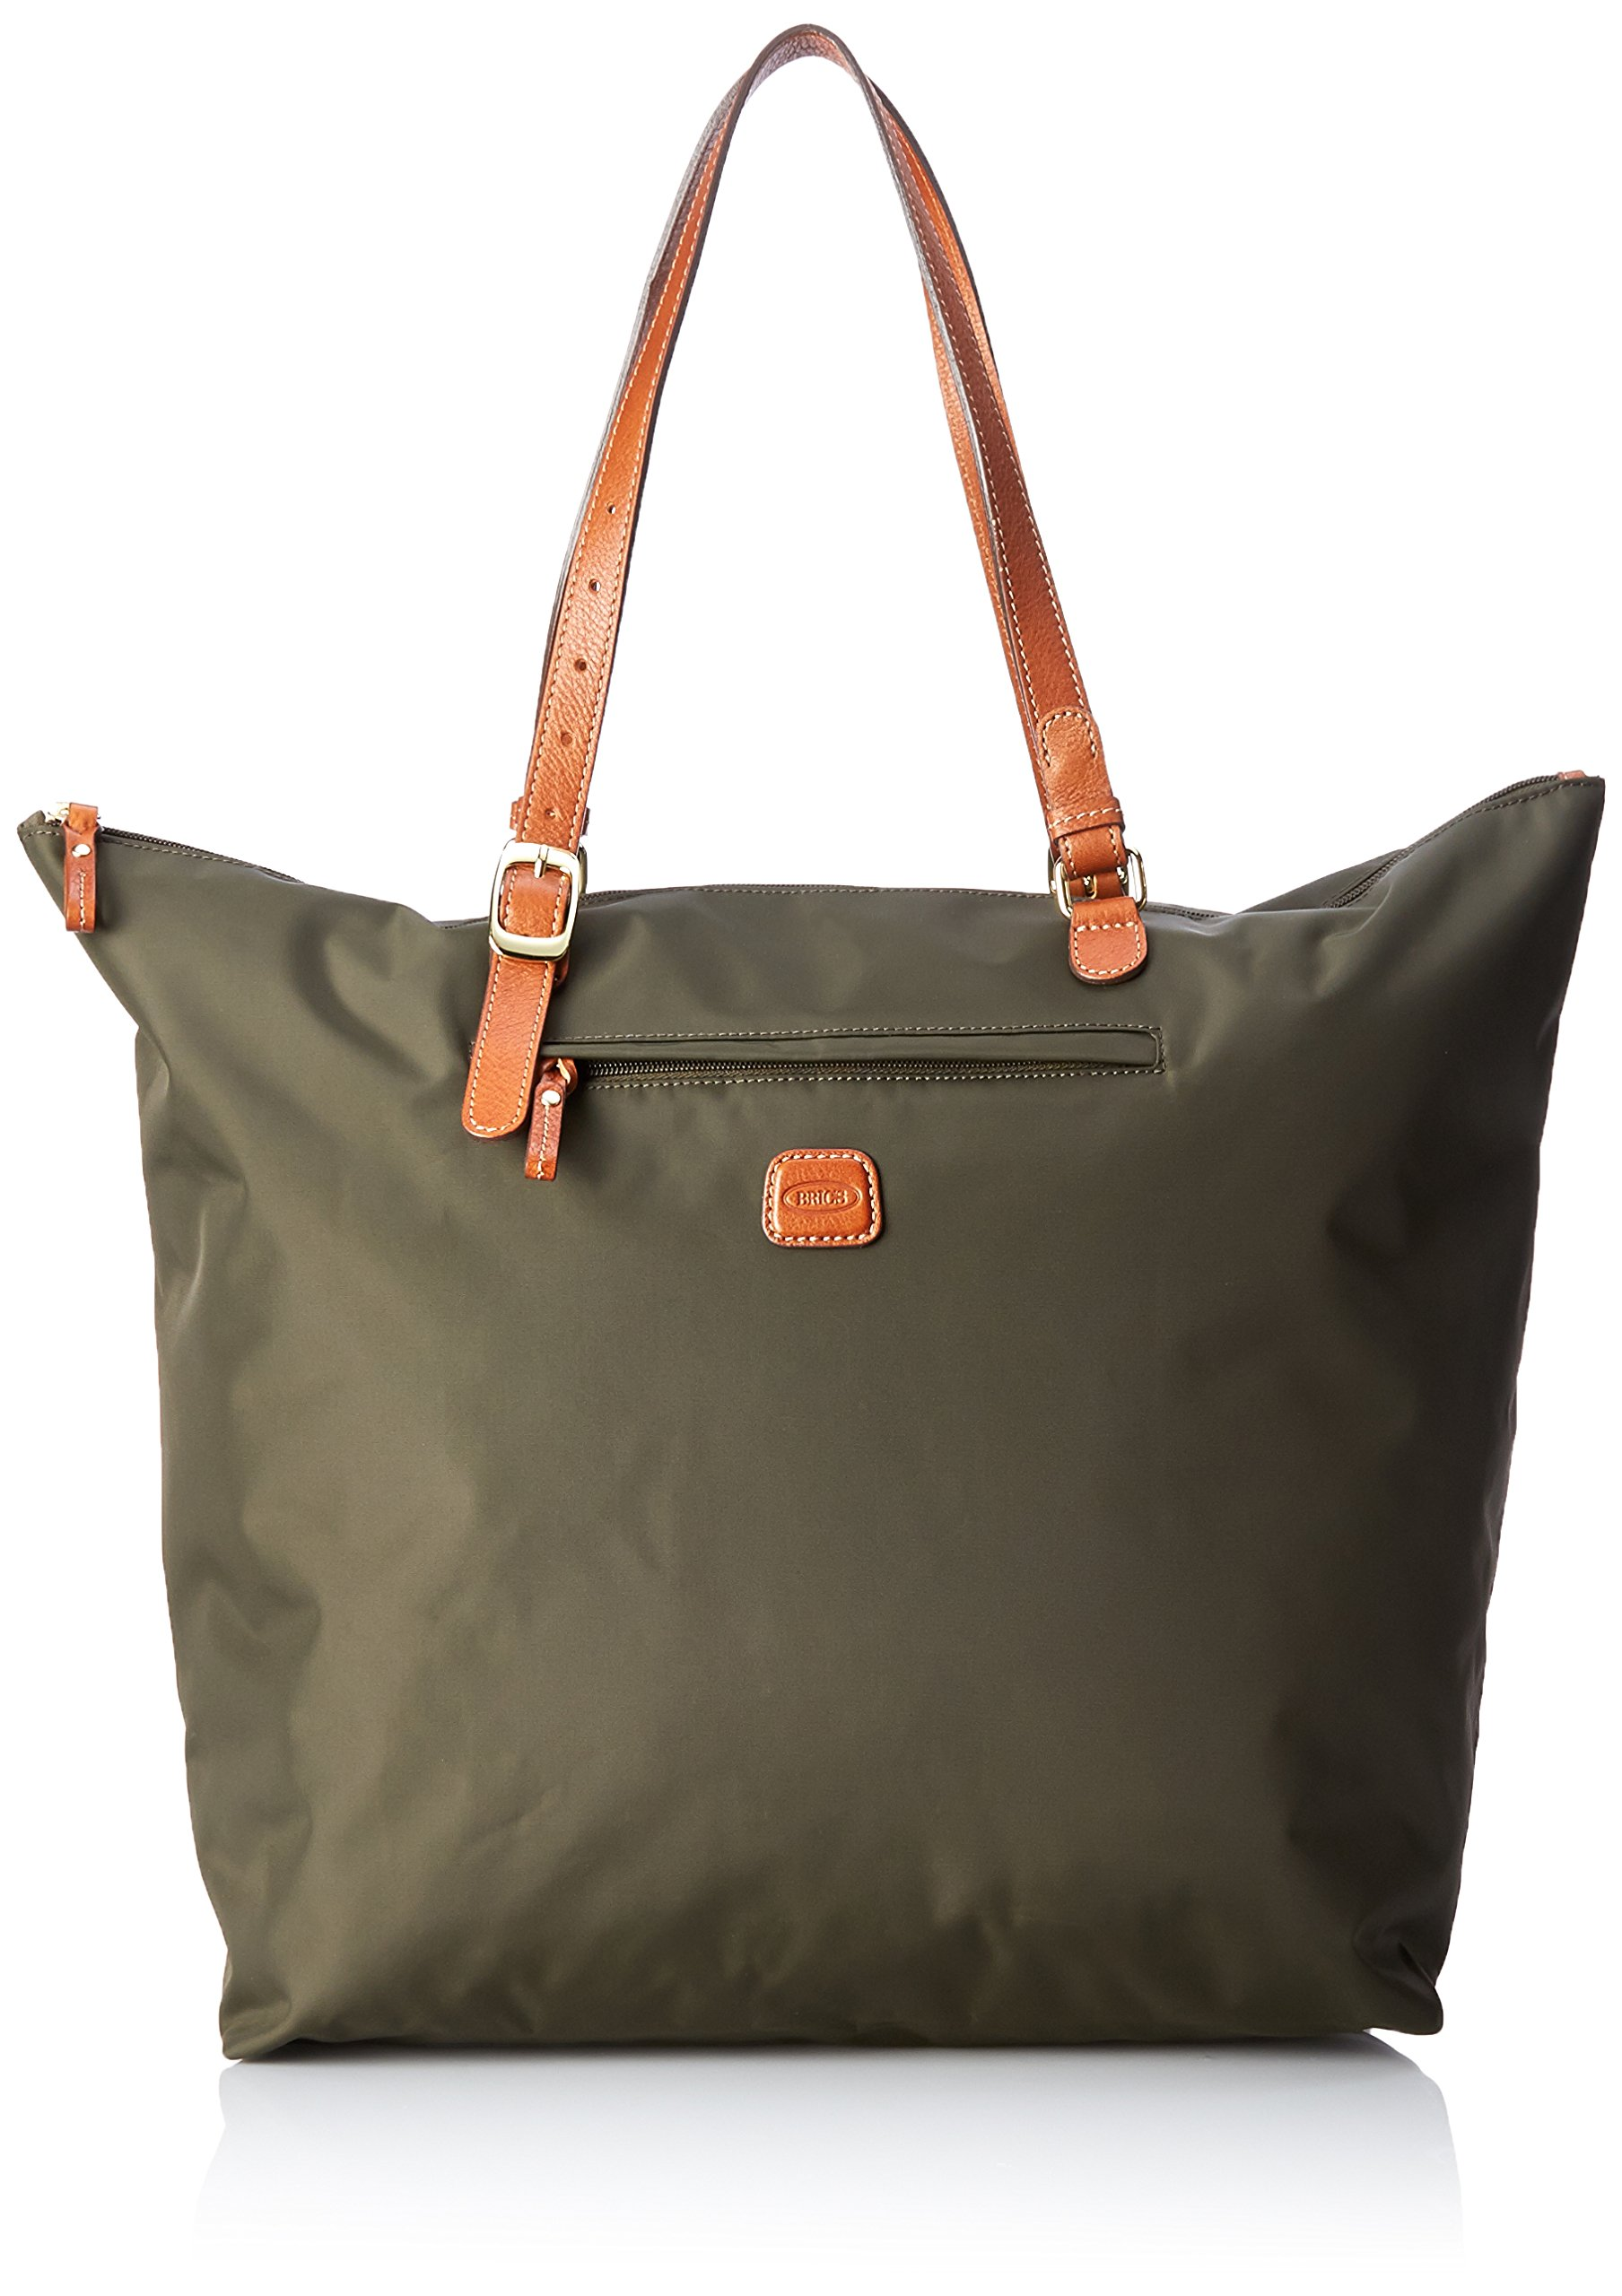 Bric's Xl Sportina, Olive, One Size